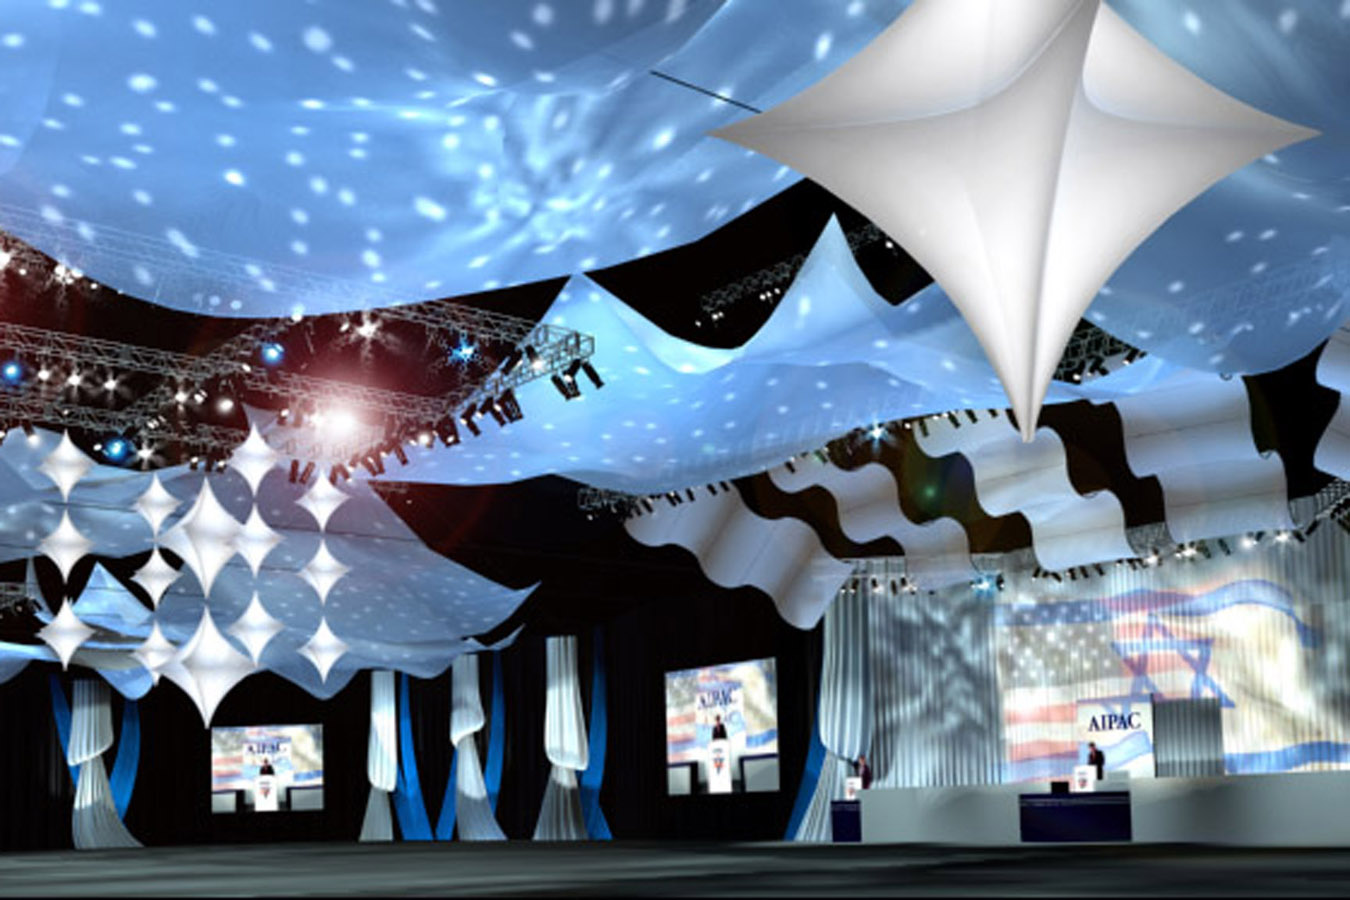 AIPA03 1Rendr : Rendering of the 2003 Gala Event